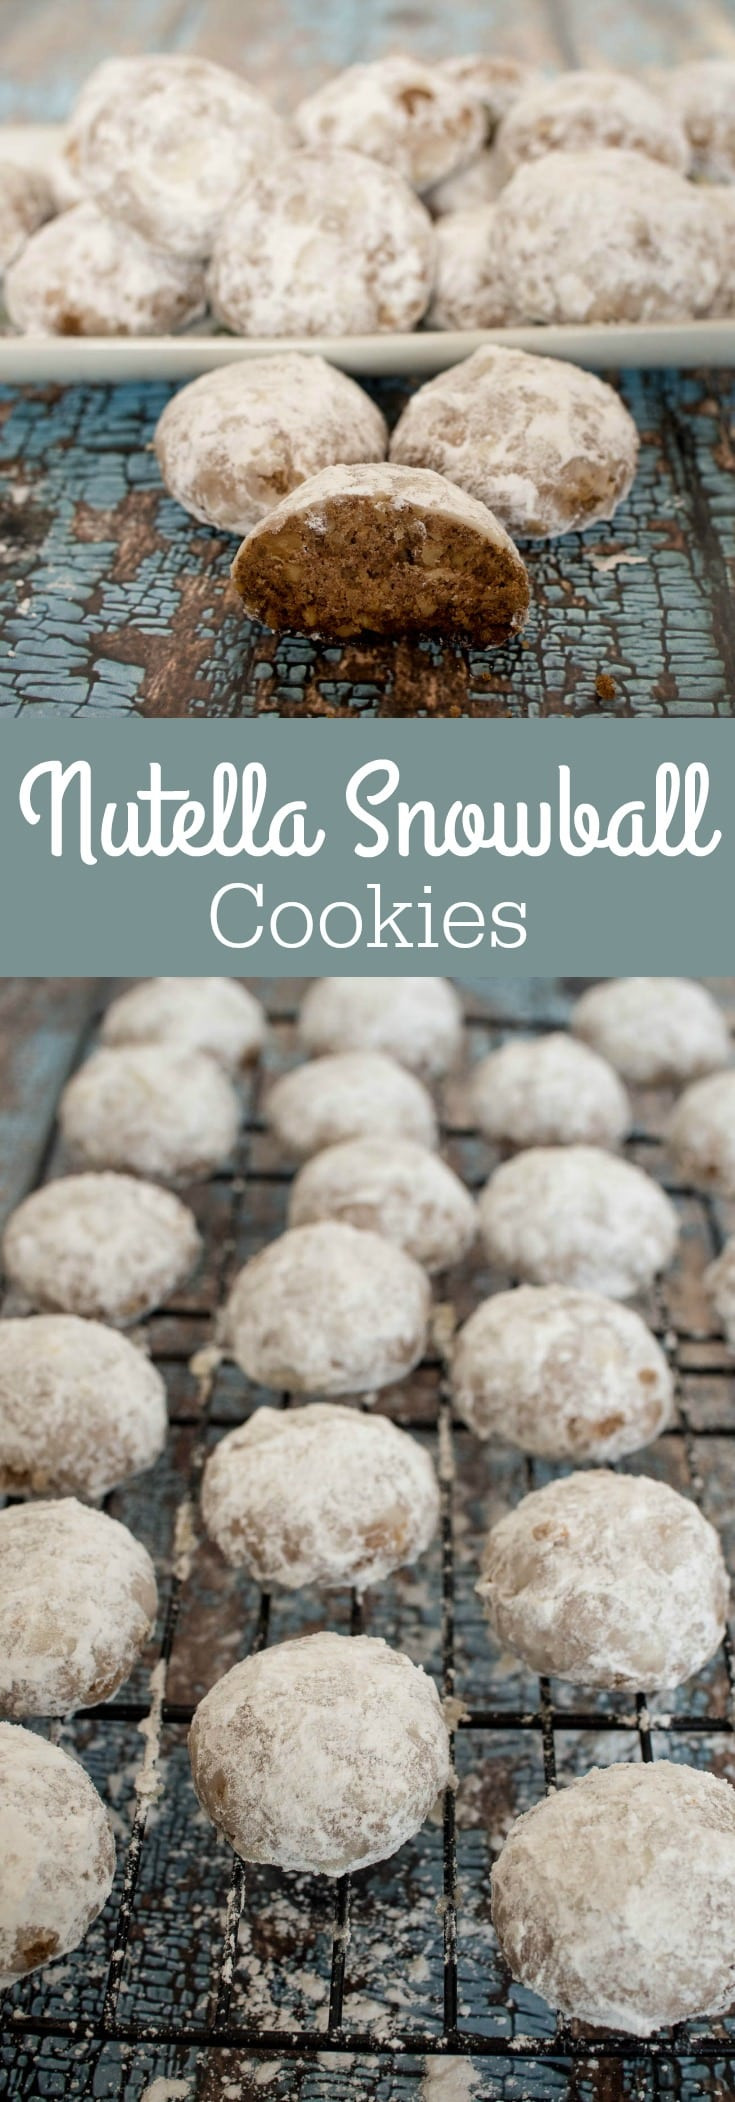 Christmas Cookies With Powdered Sugar  Nutella Snowball Cookies